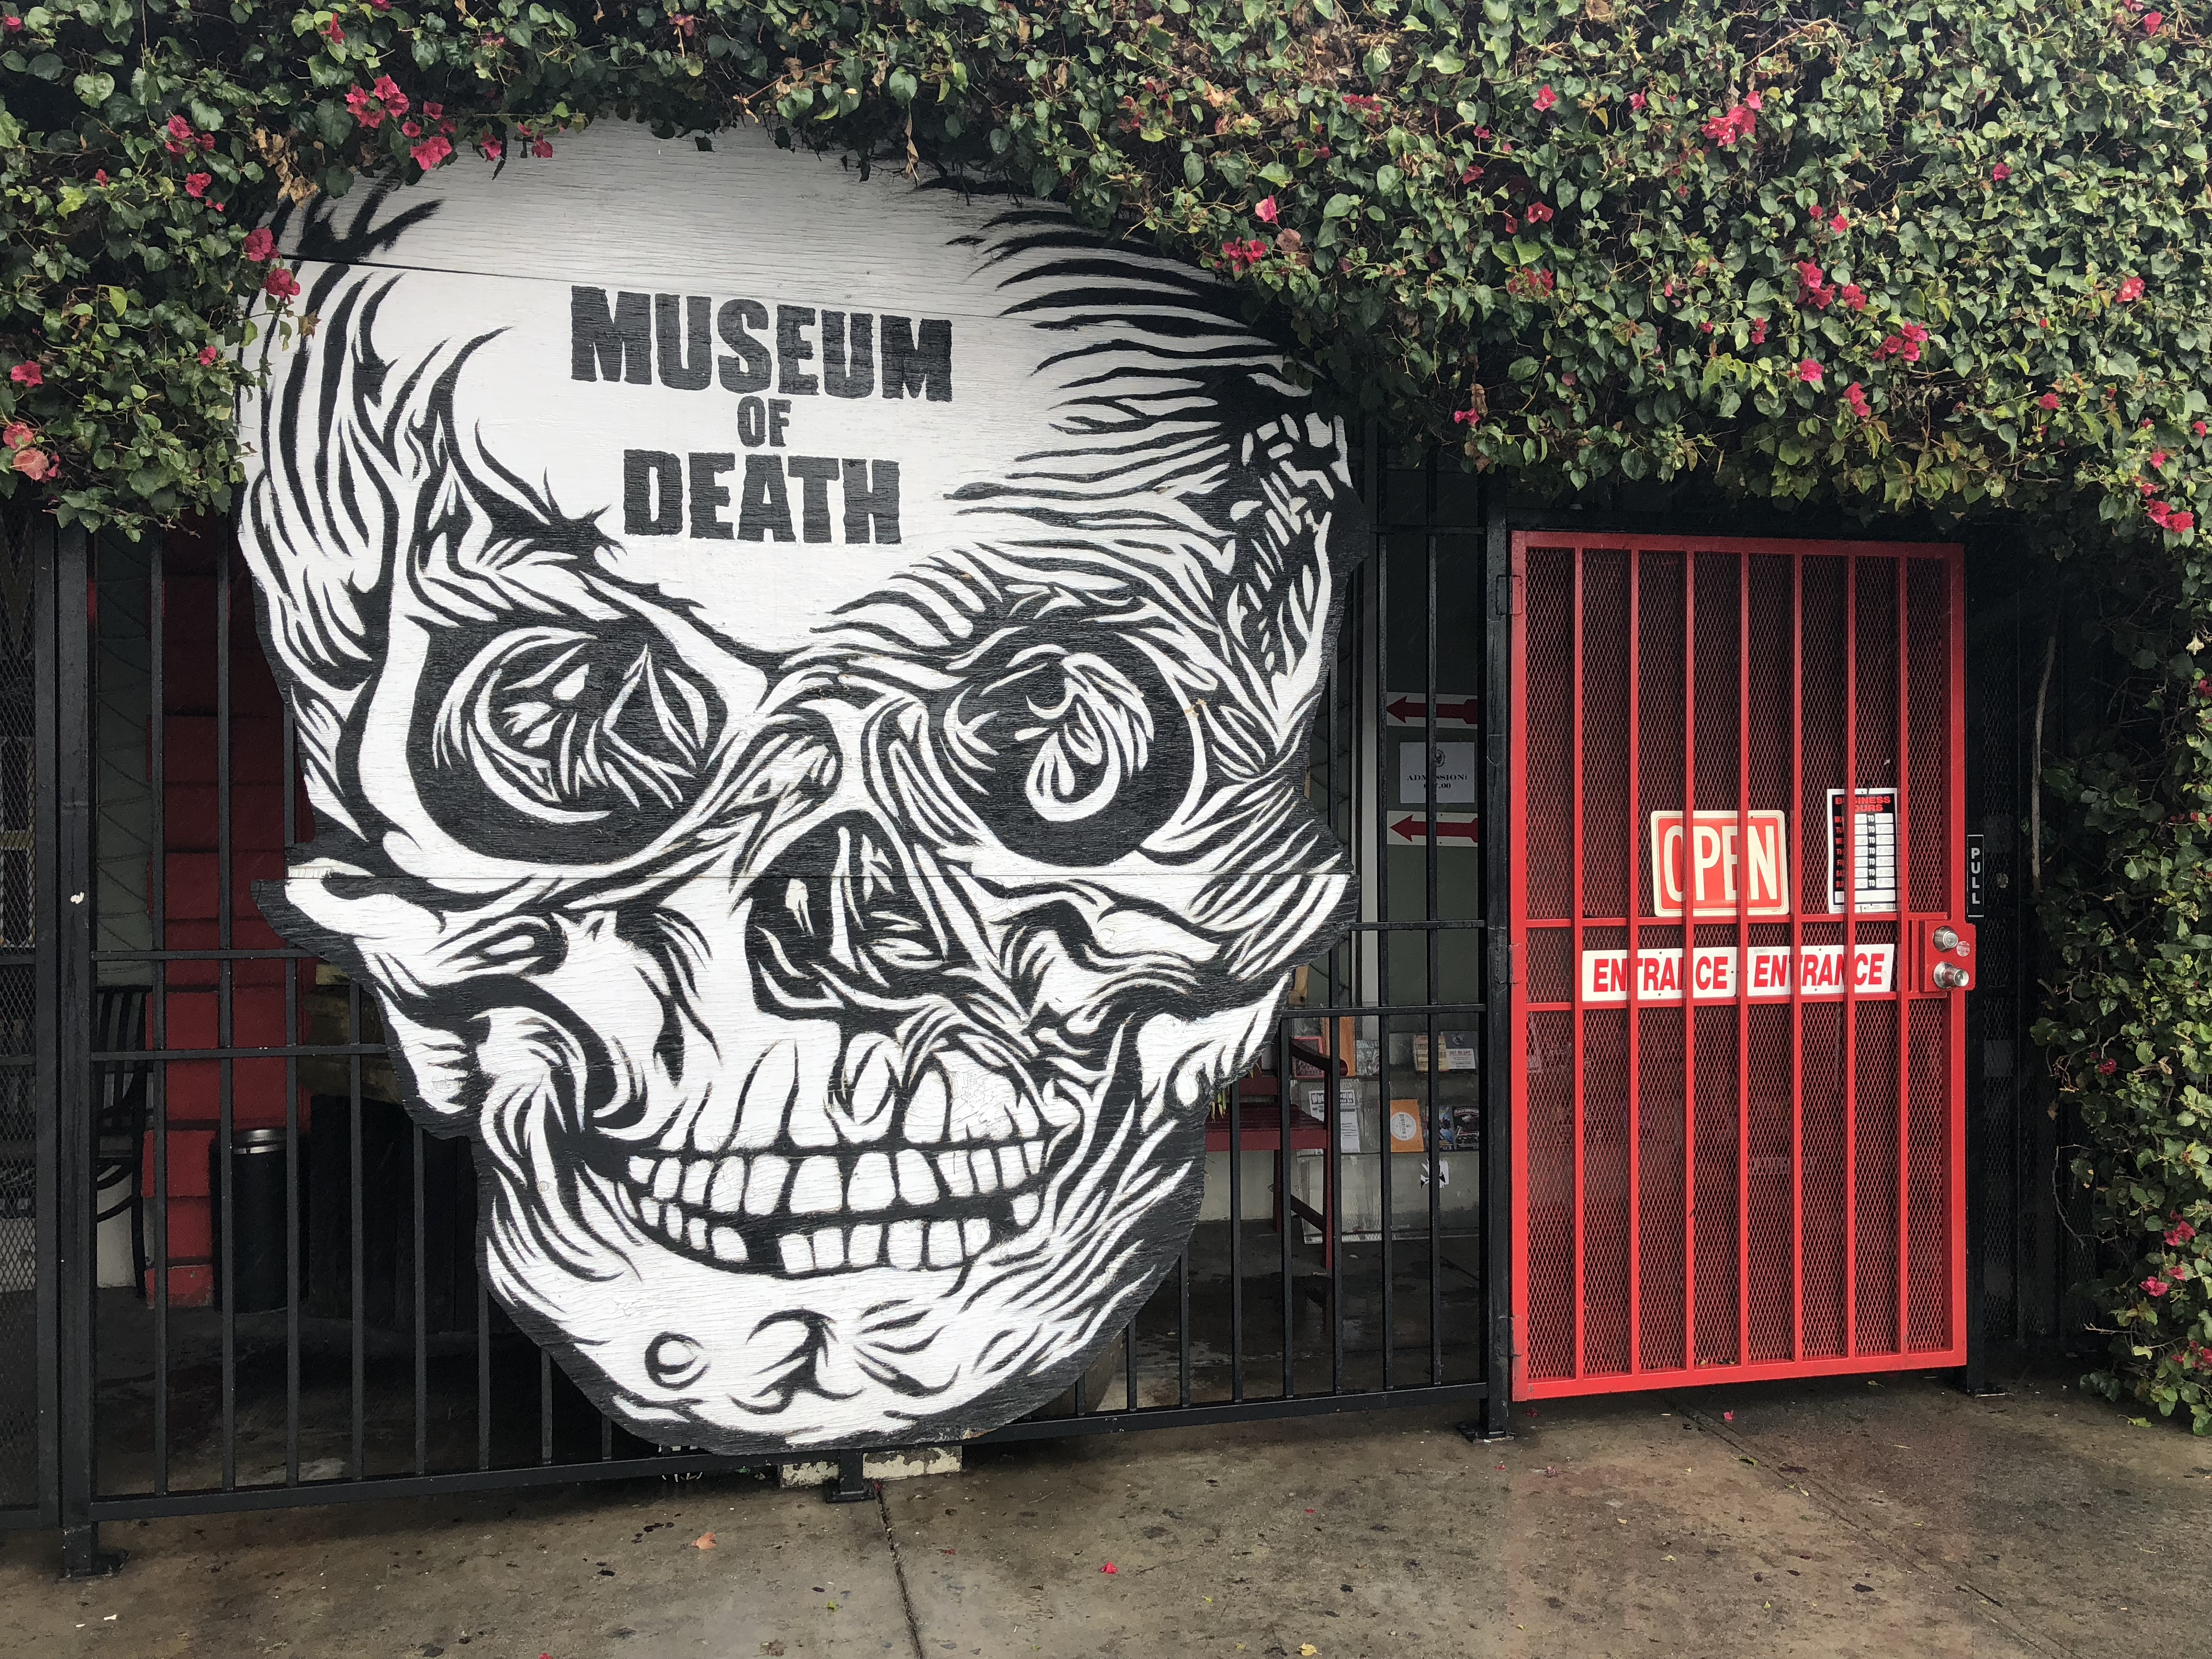 The entrance to the Museum of Death